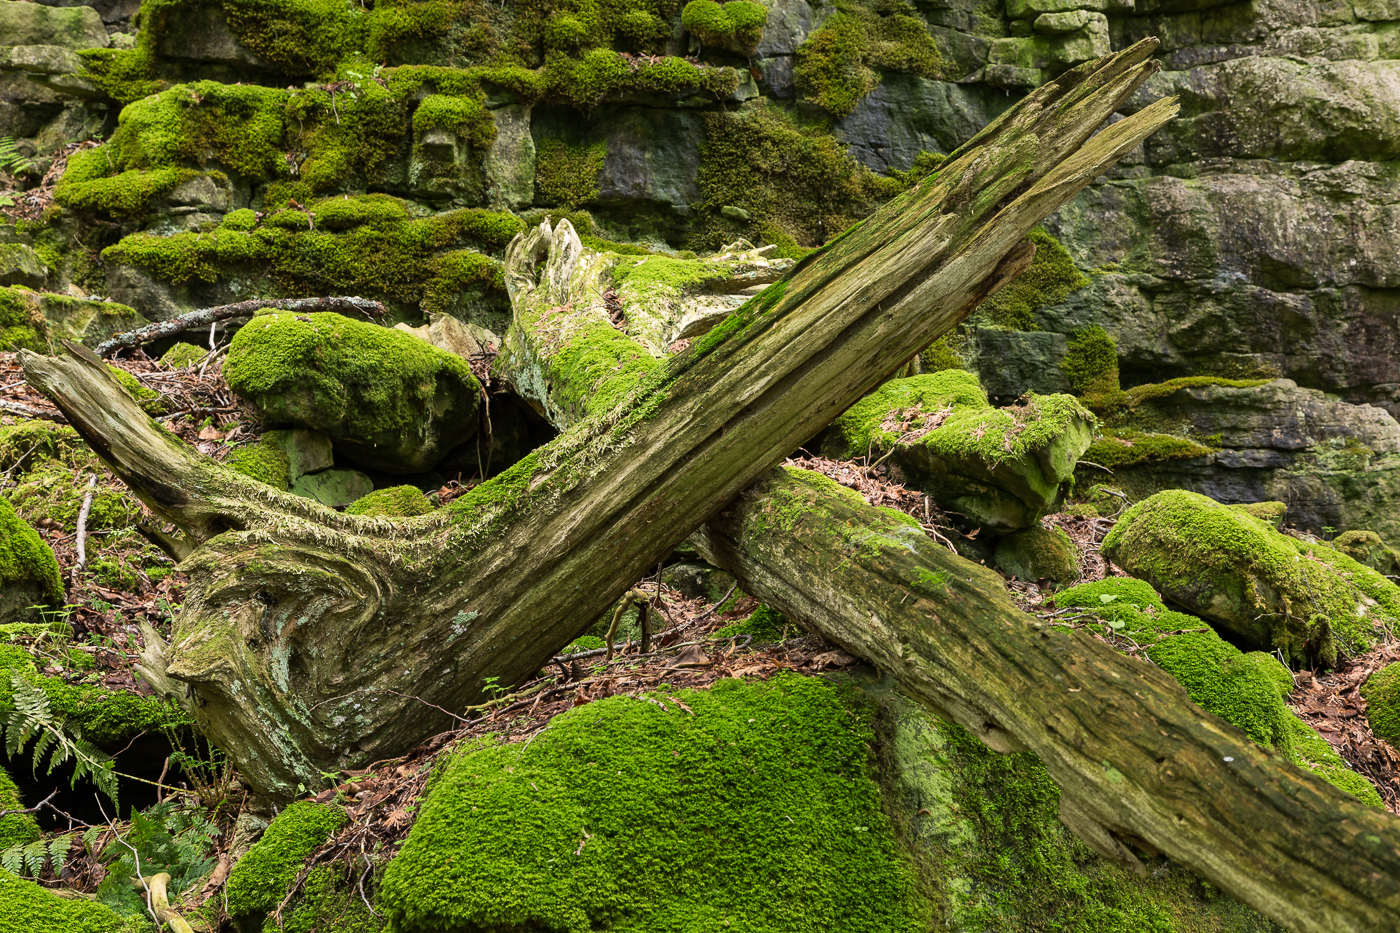 Branch abstracts amid the moss and stones